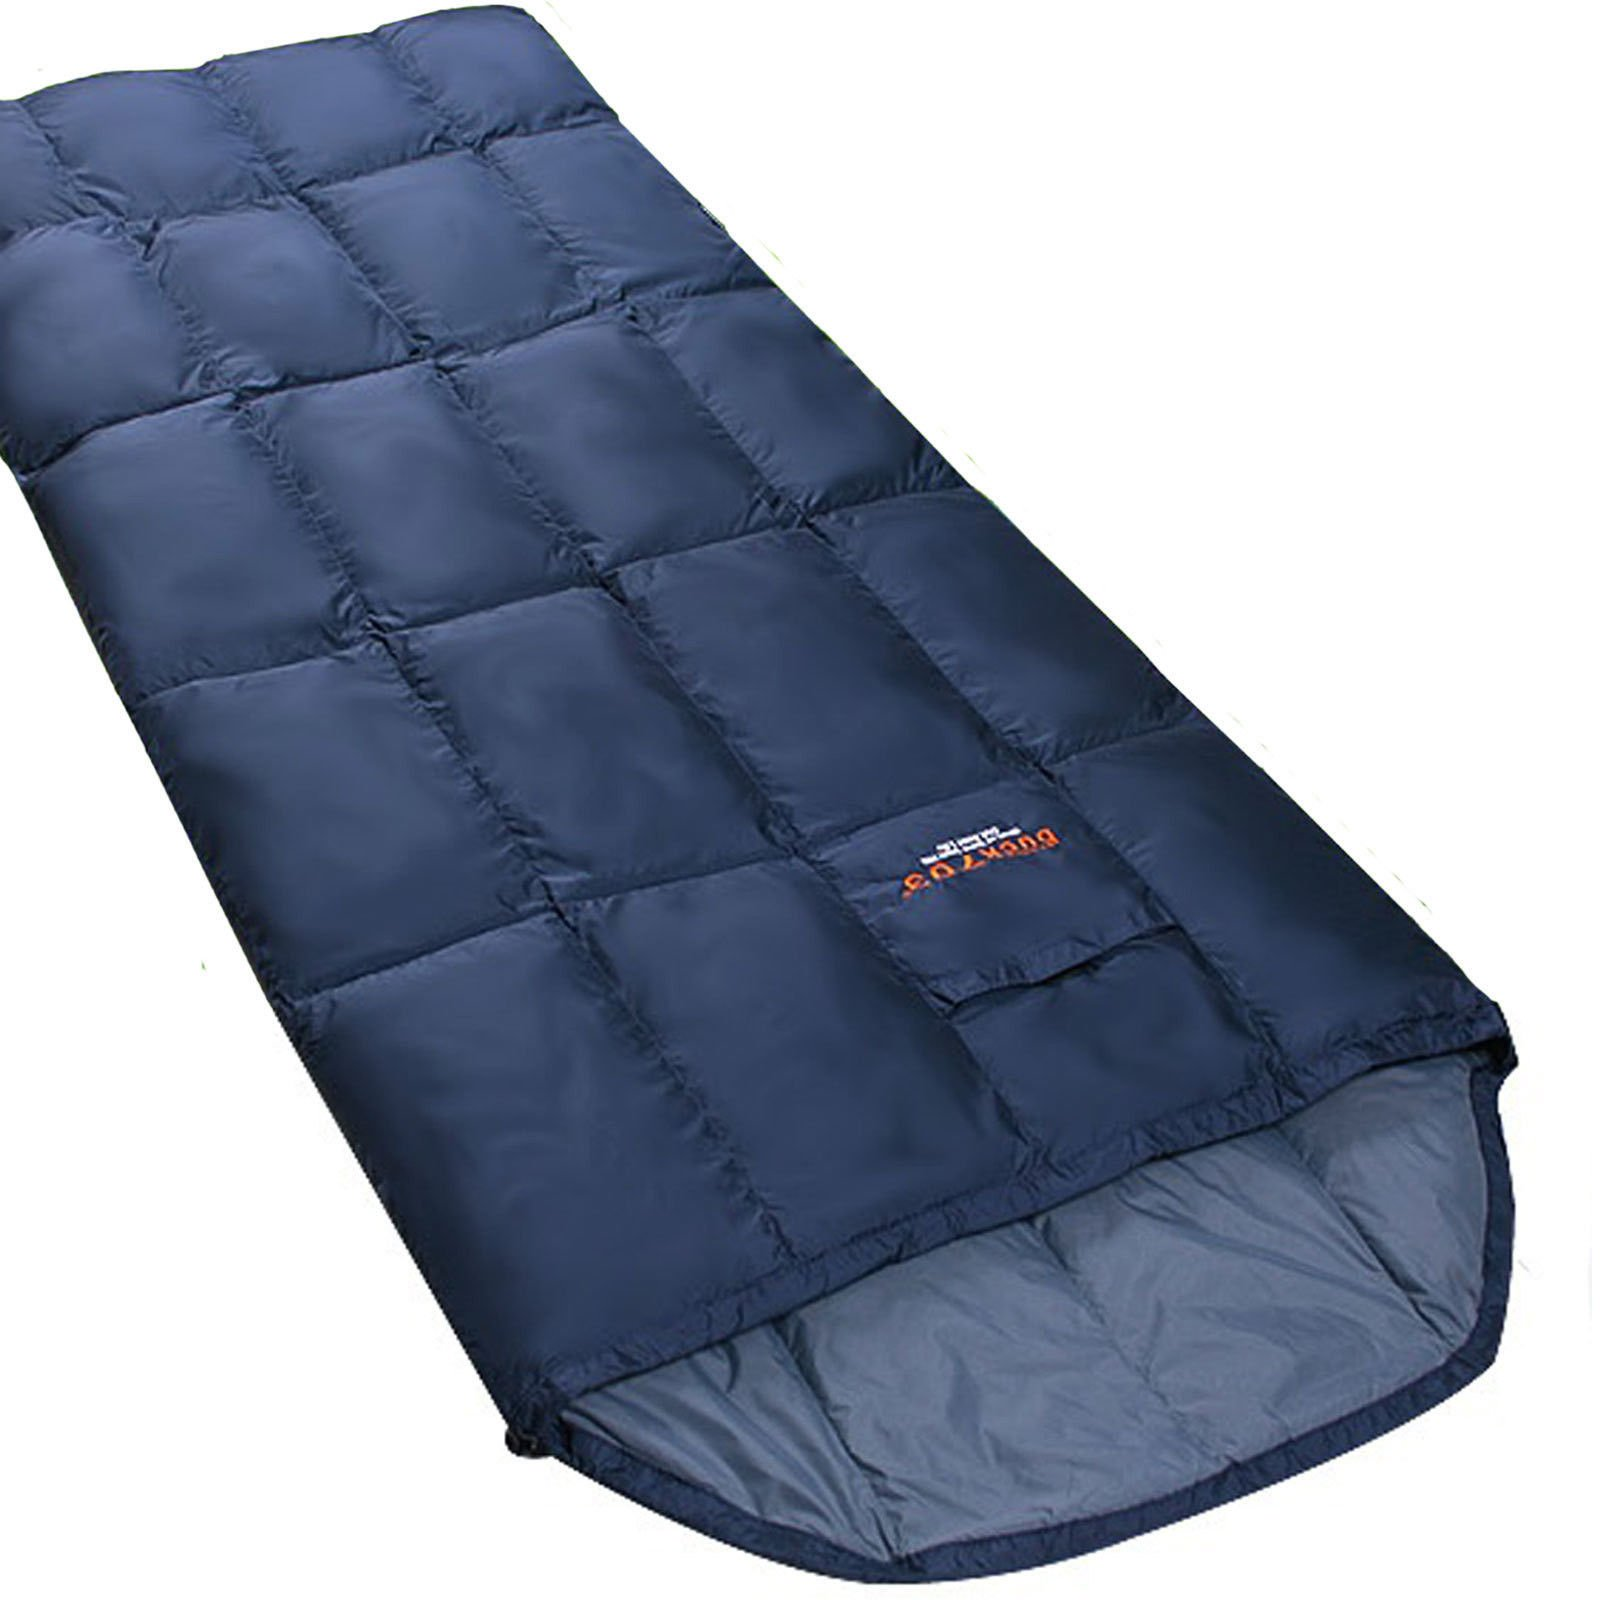 Ultralight 350G Down Sleeping Bag 0 Backpacking Compact Camping by Sleeping Bag